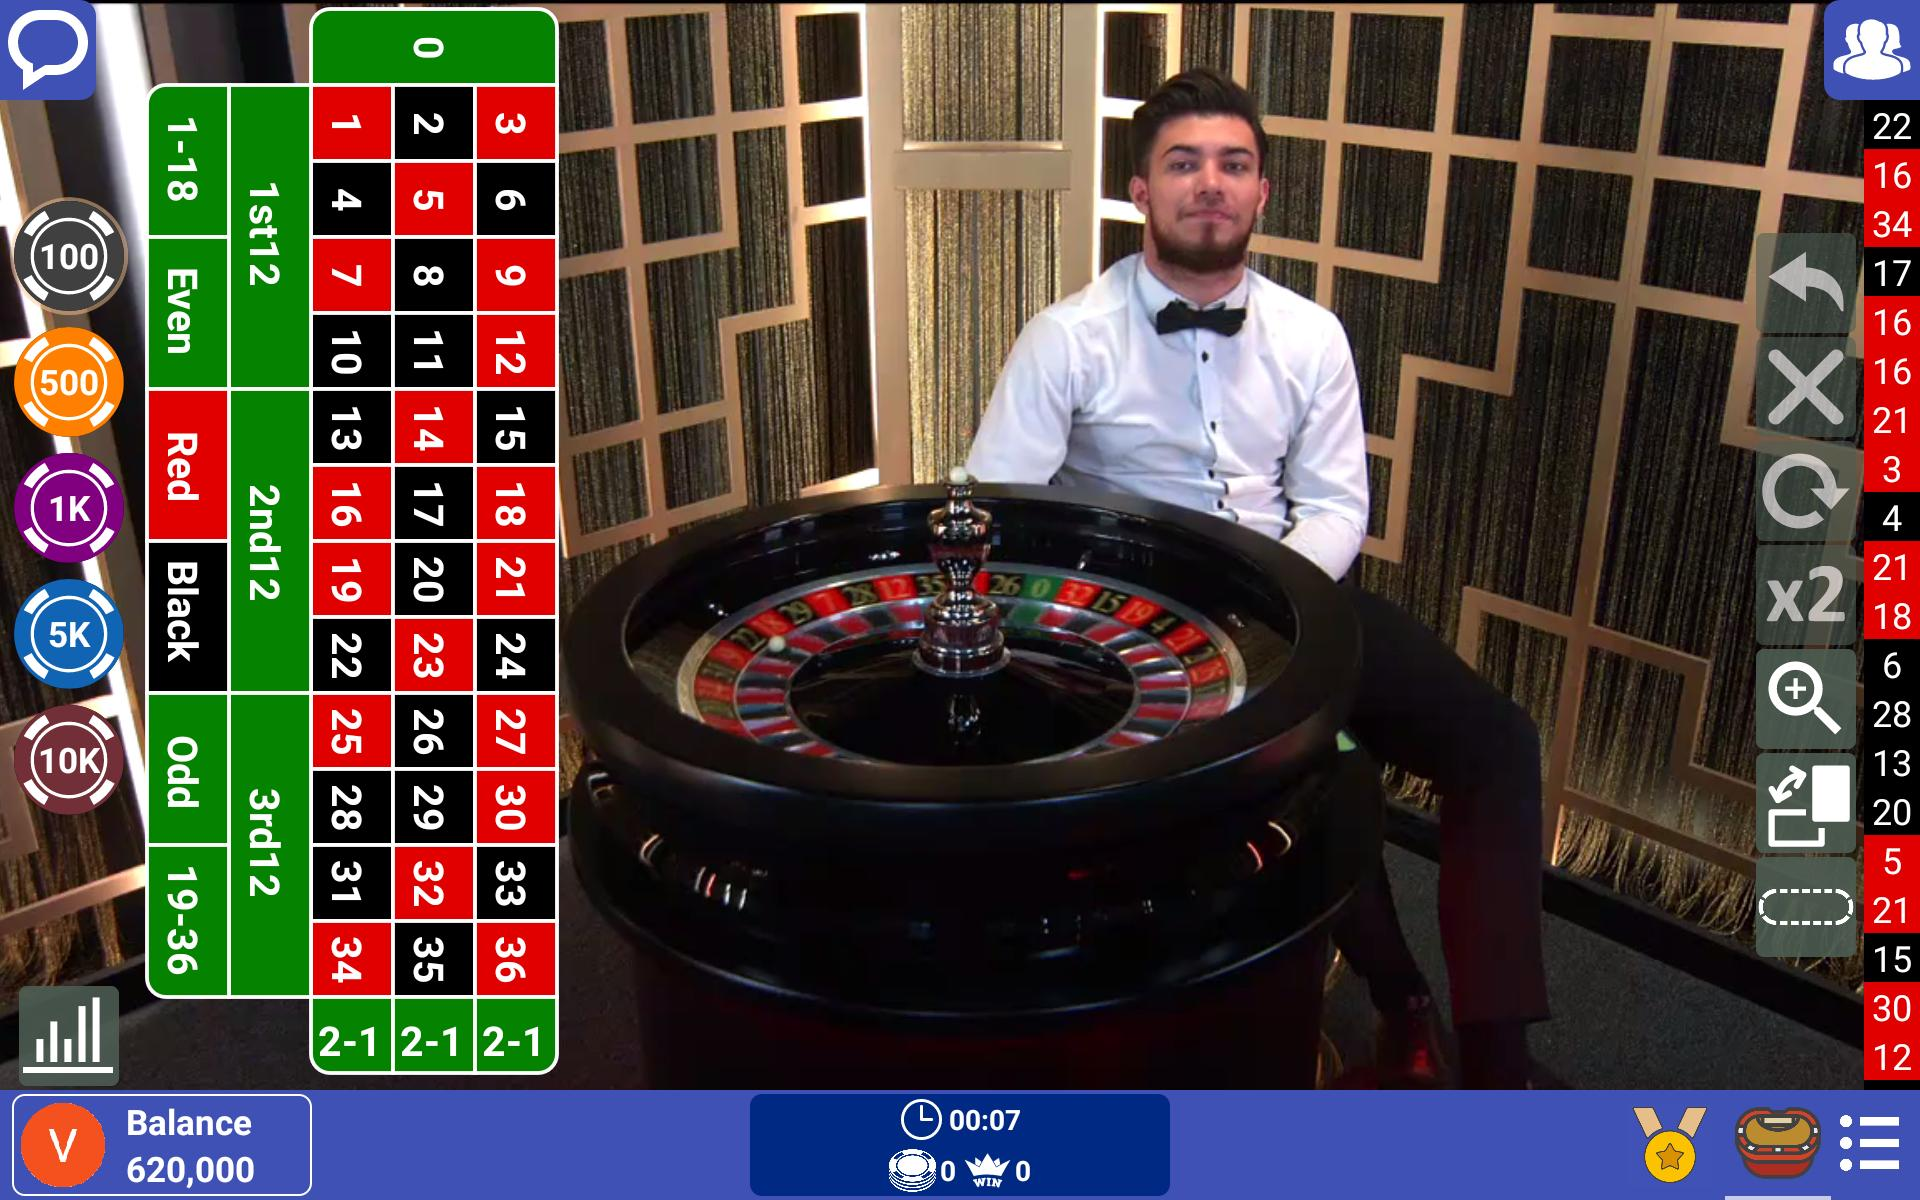 Live Dealer Casino Baccarat Free Roulette Games For Android